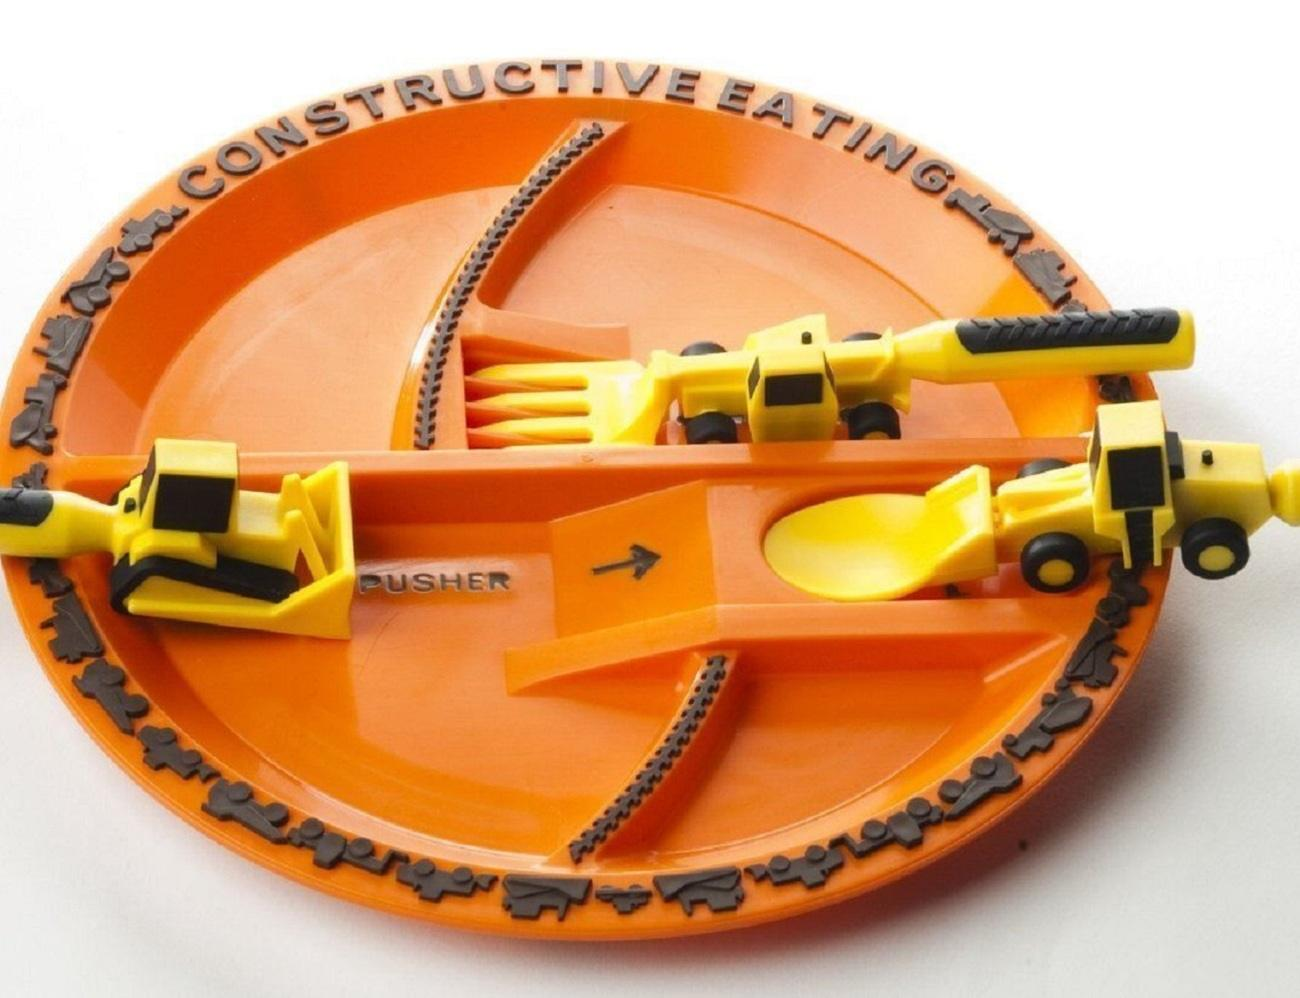 Constructive Eating Plate And Utensils